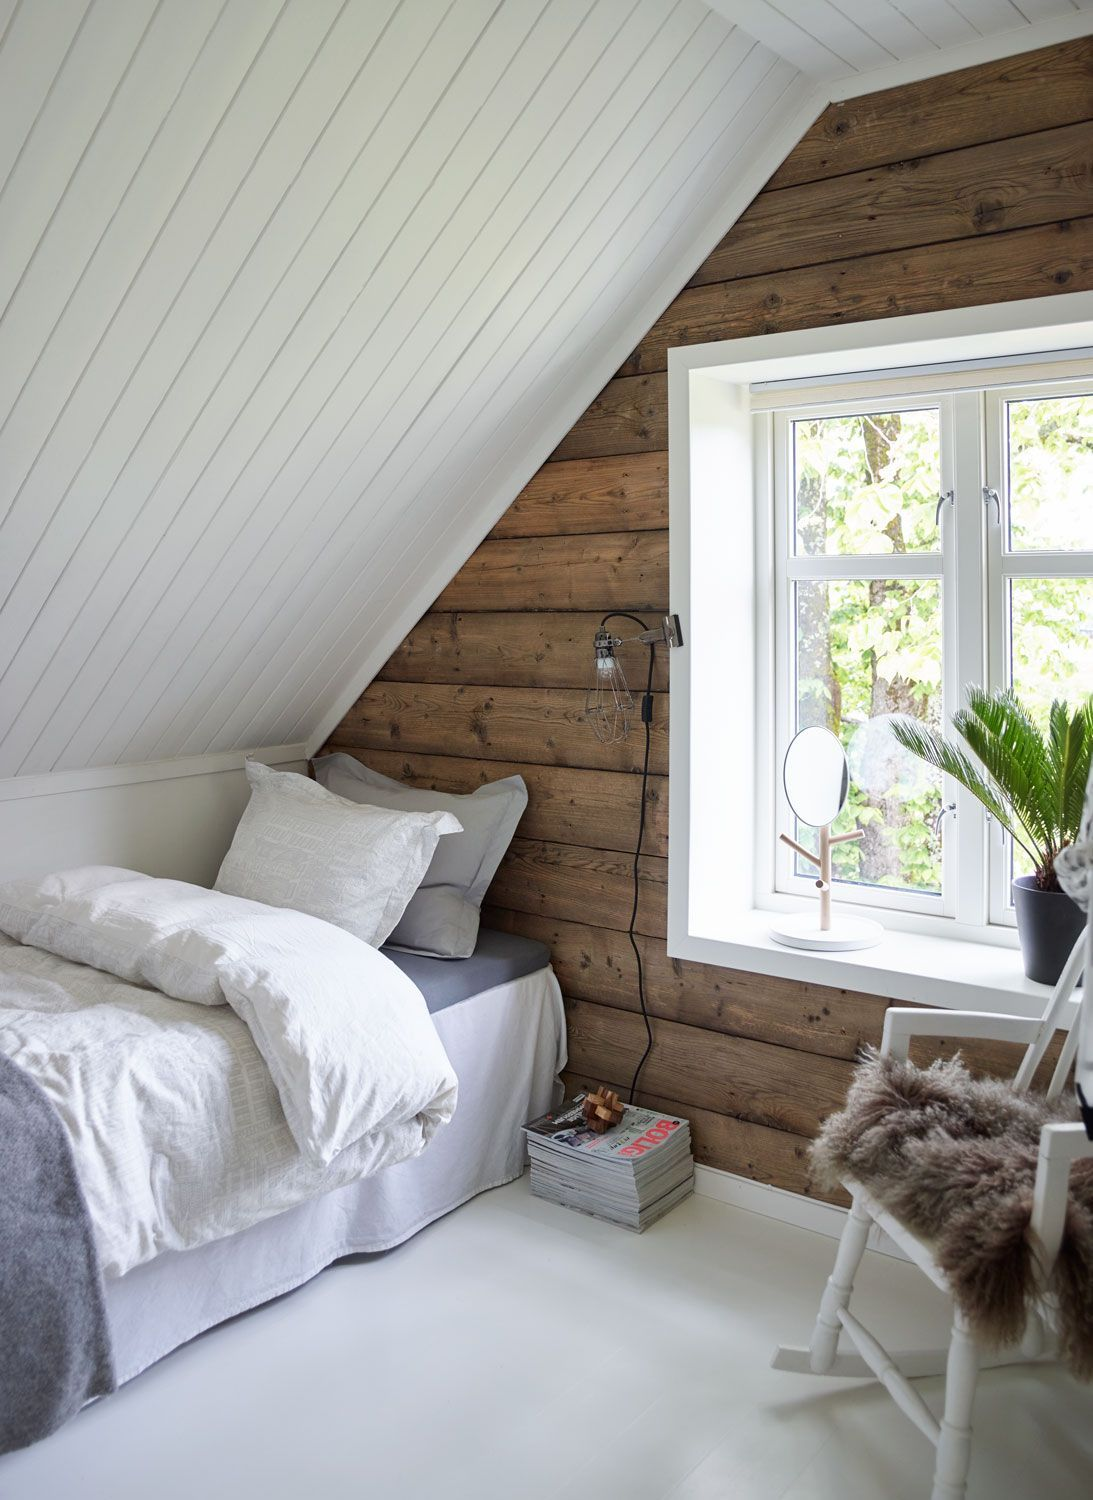 Bedroom Dormer Window Alcove Is Filled With A Built In Window Seat